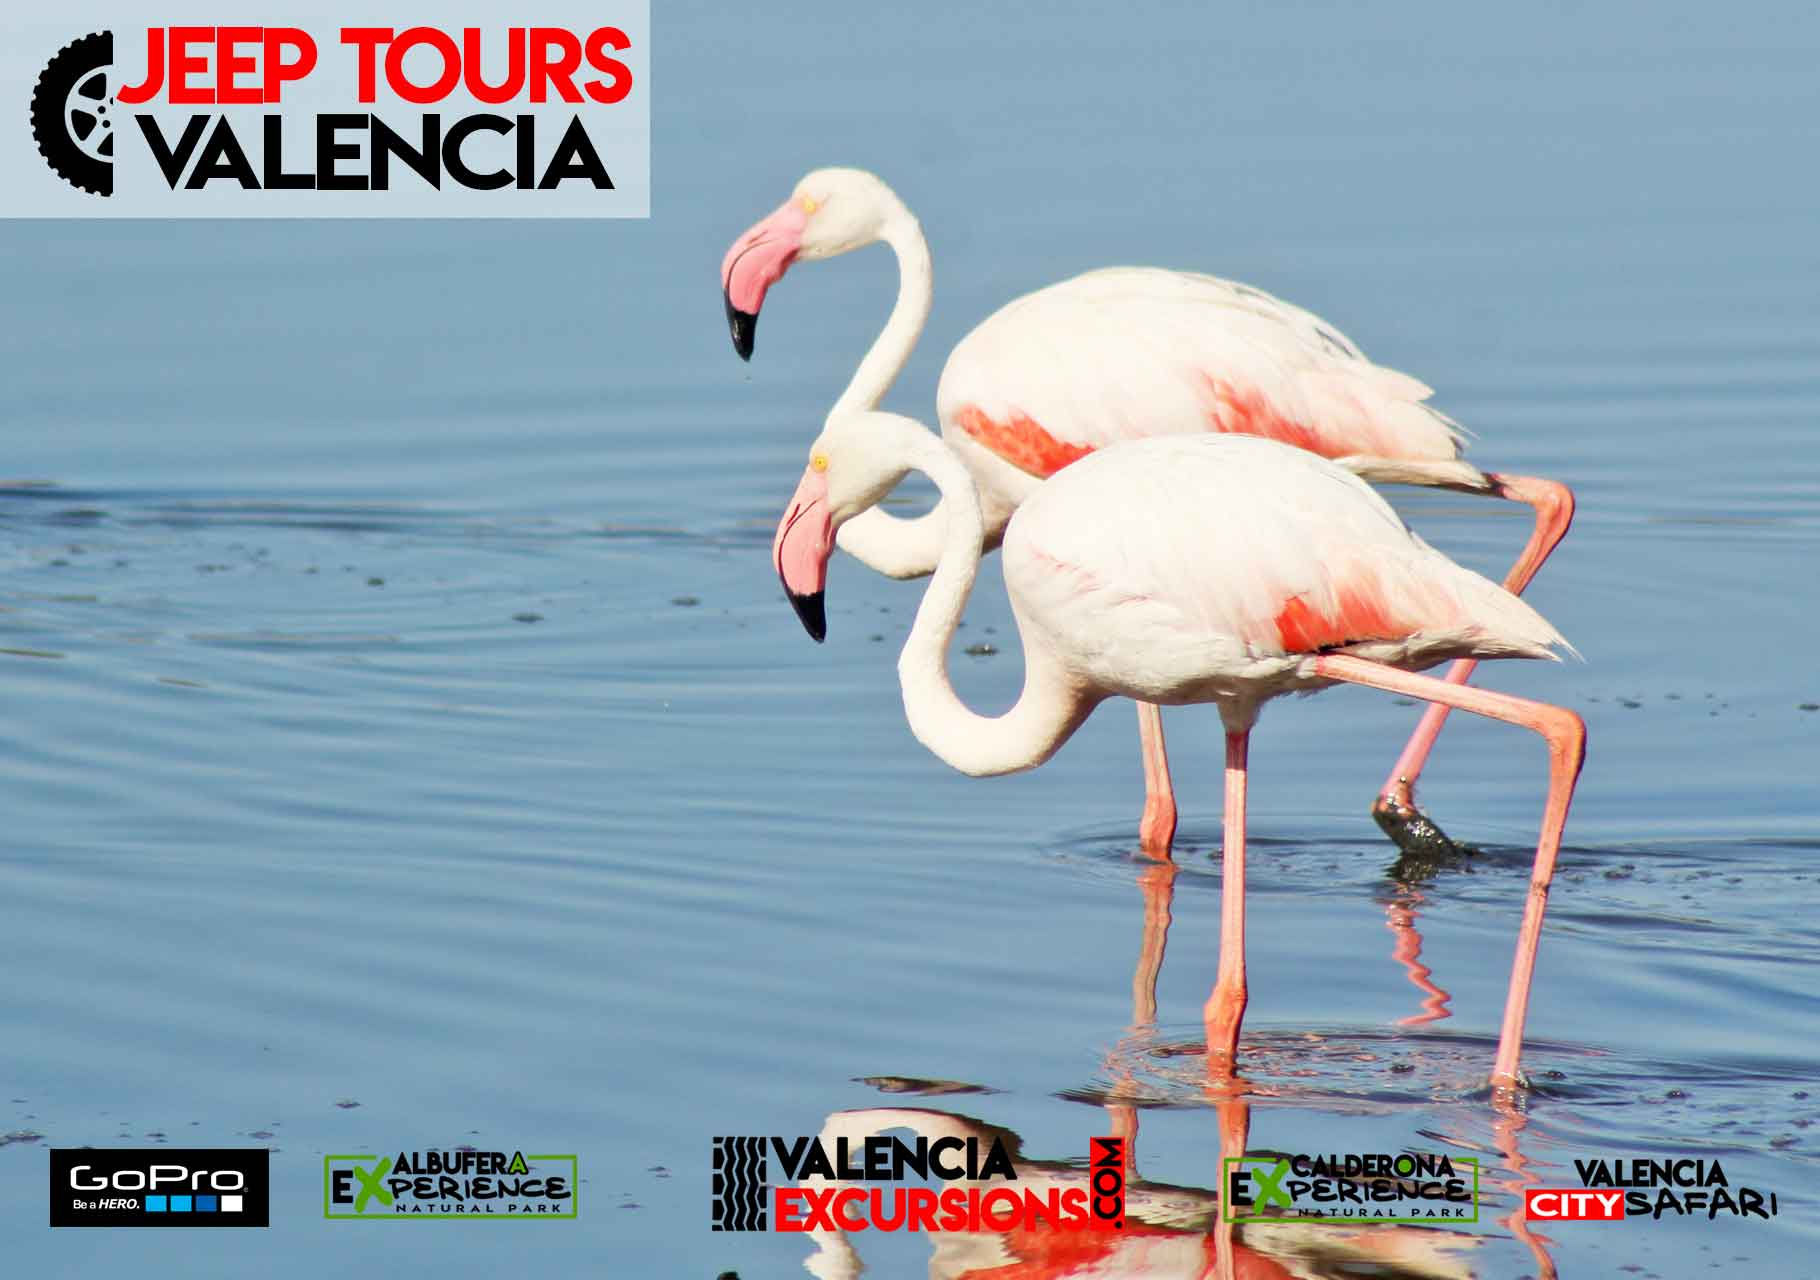 Tour in Albufera Valencia